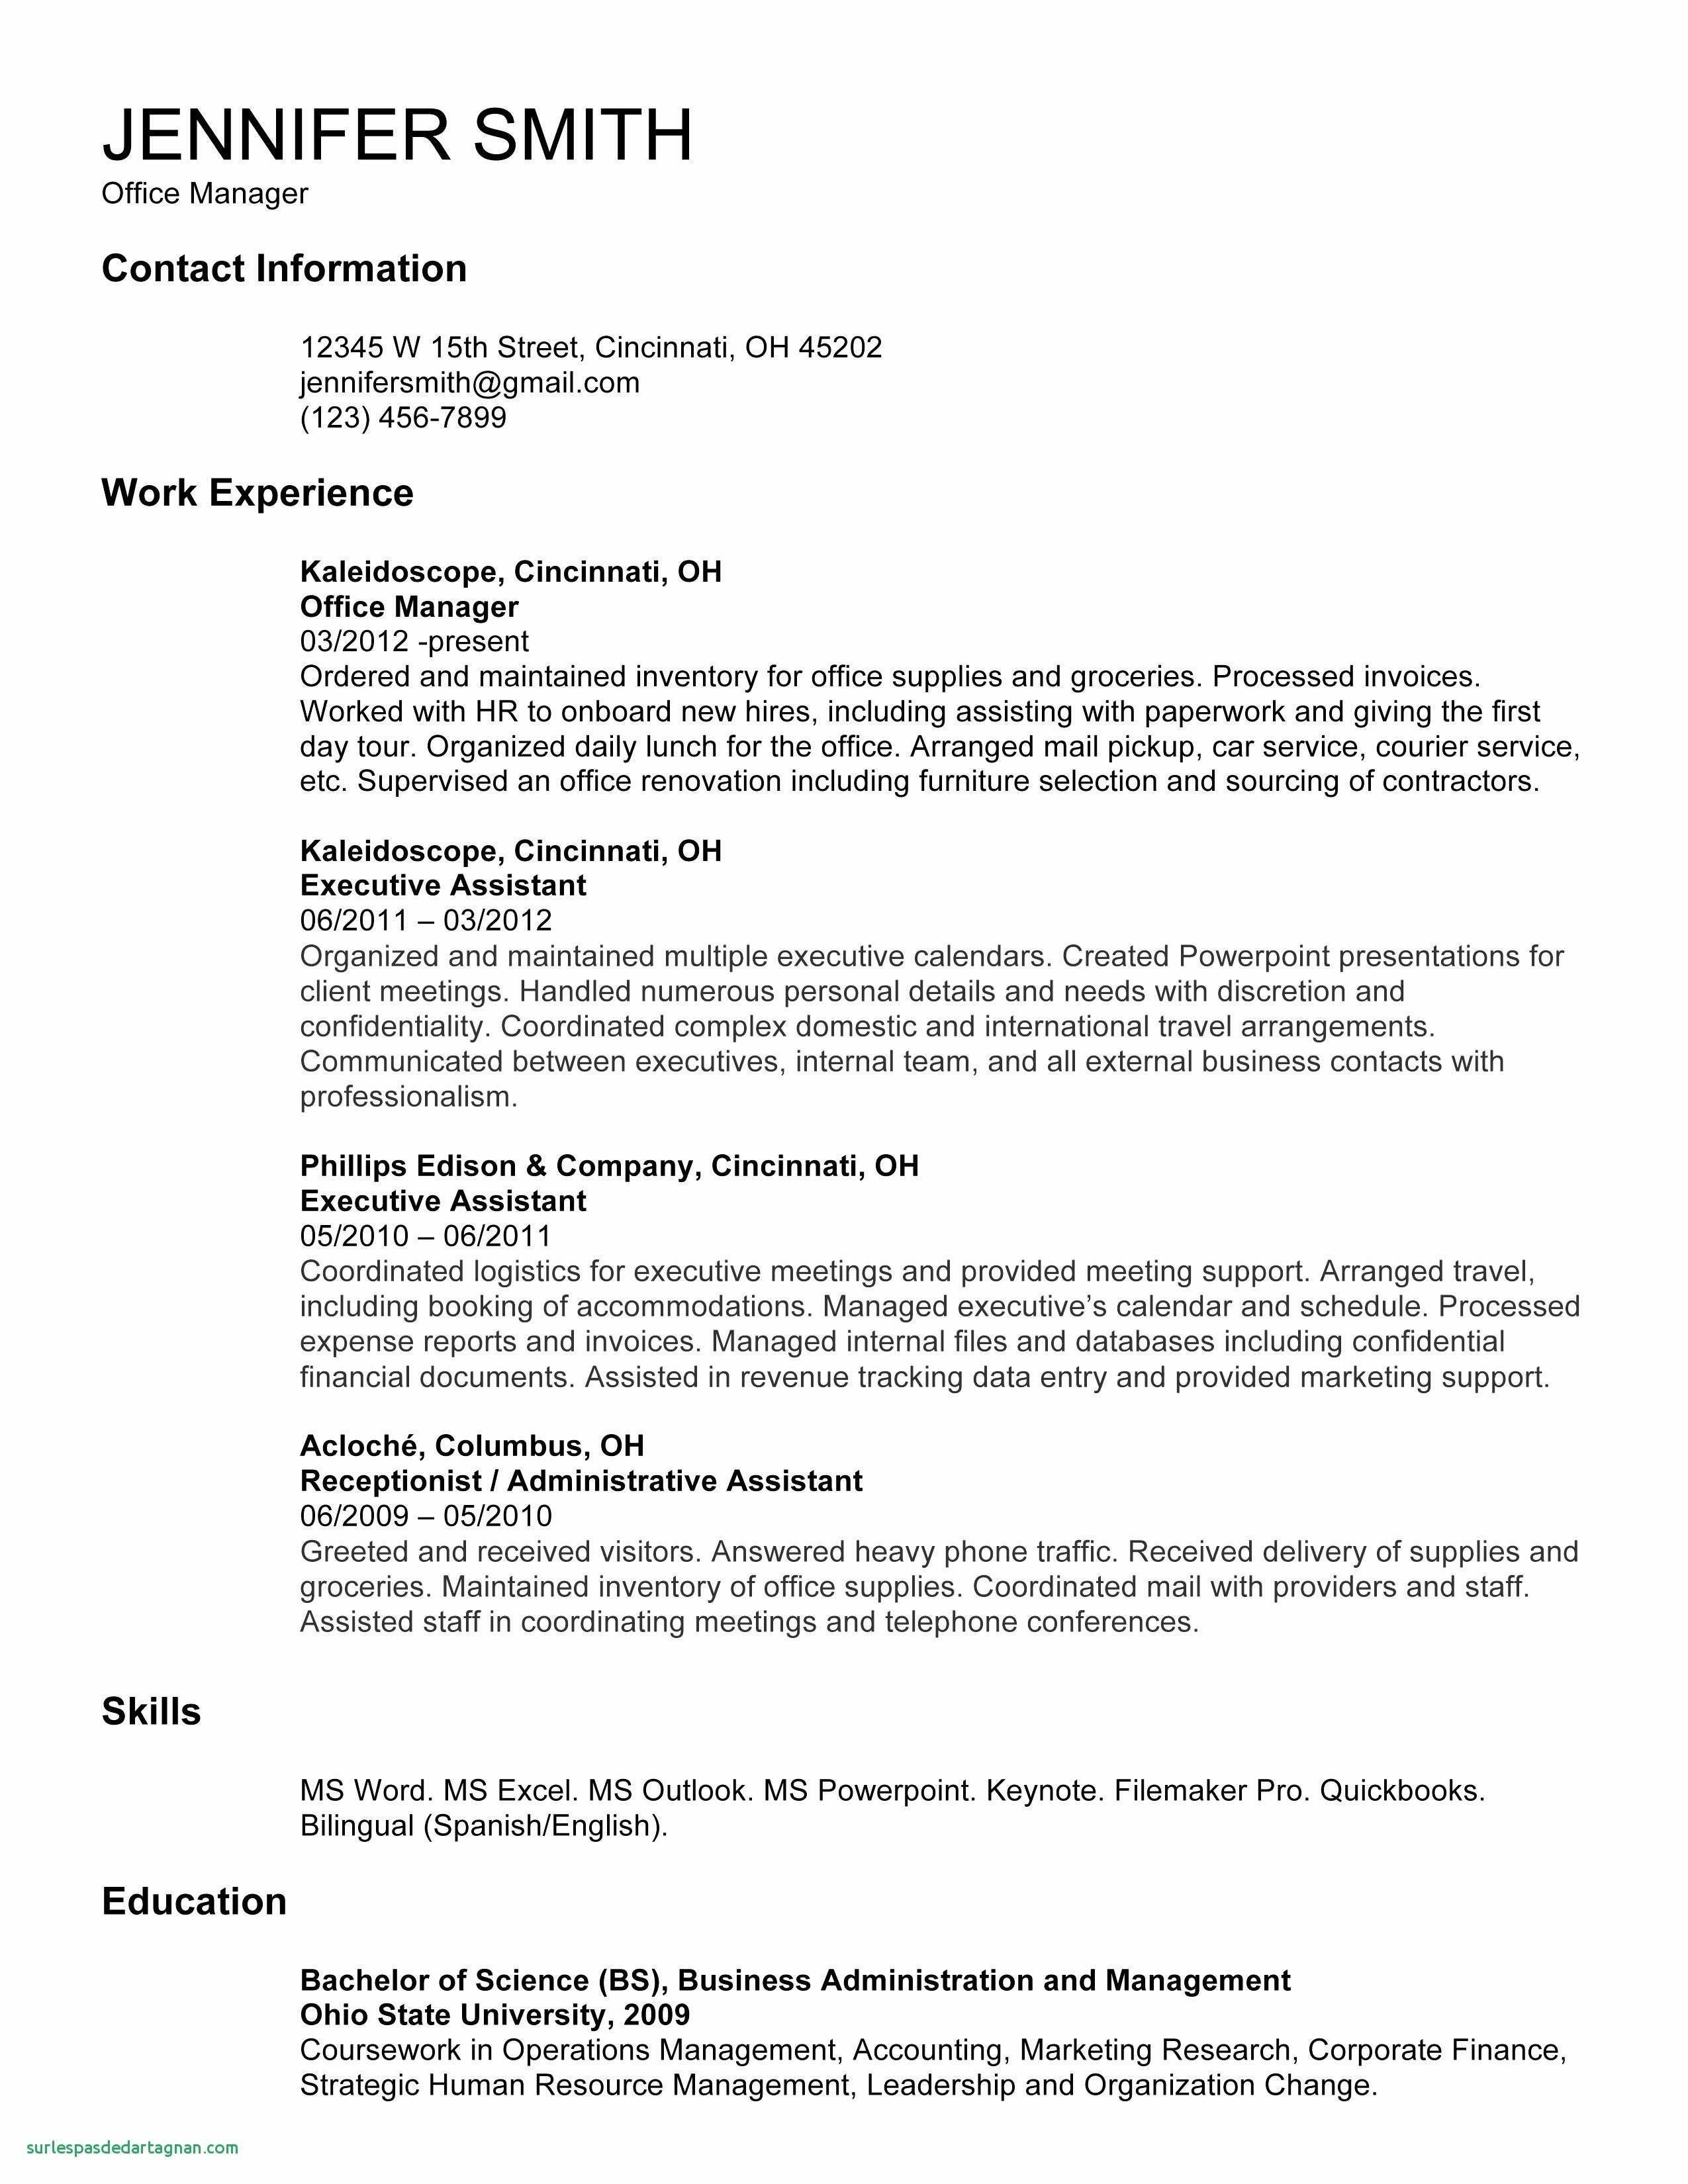 Spanish Resume Templates - Resume Template Download Free Unique ¢Ë†Å¡ Resume Template Download